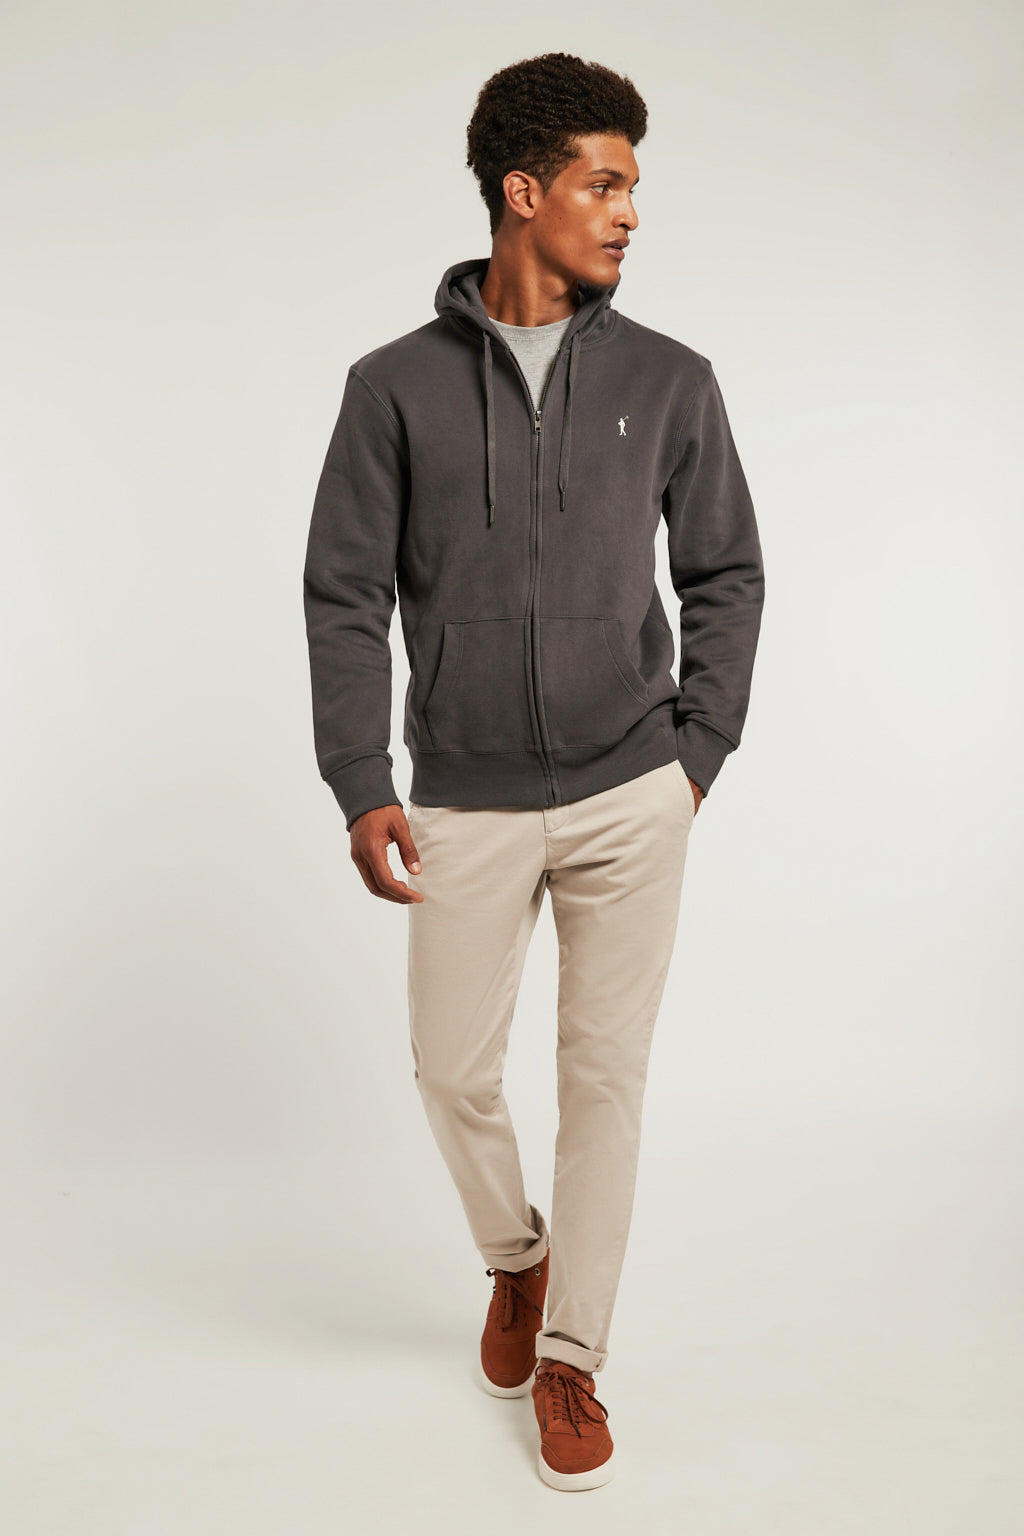 Asphalt grey sweatshirt with zip closure and kangaroo pocket